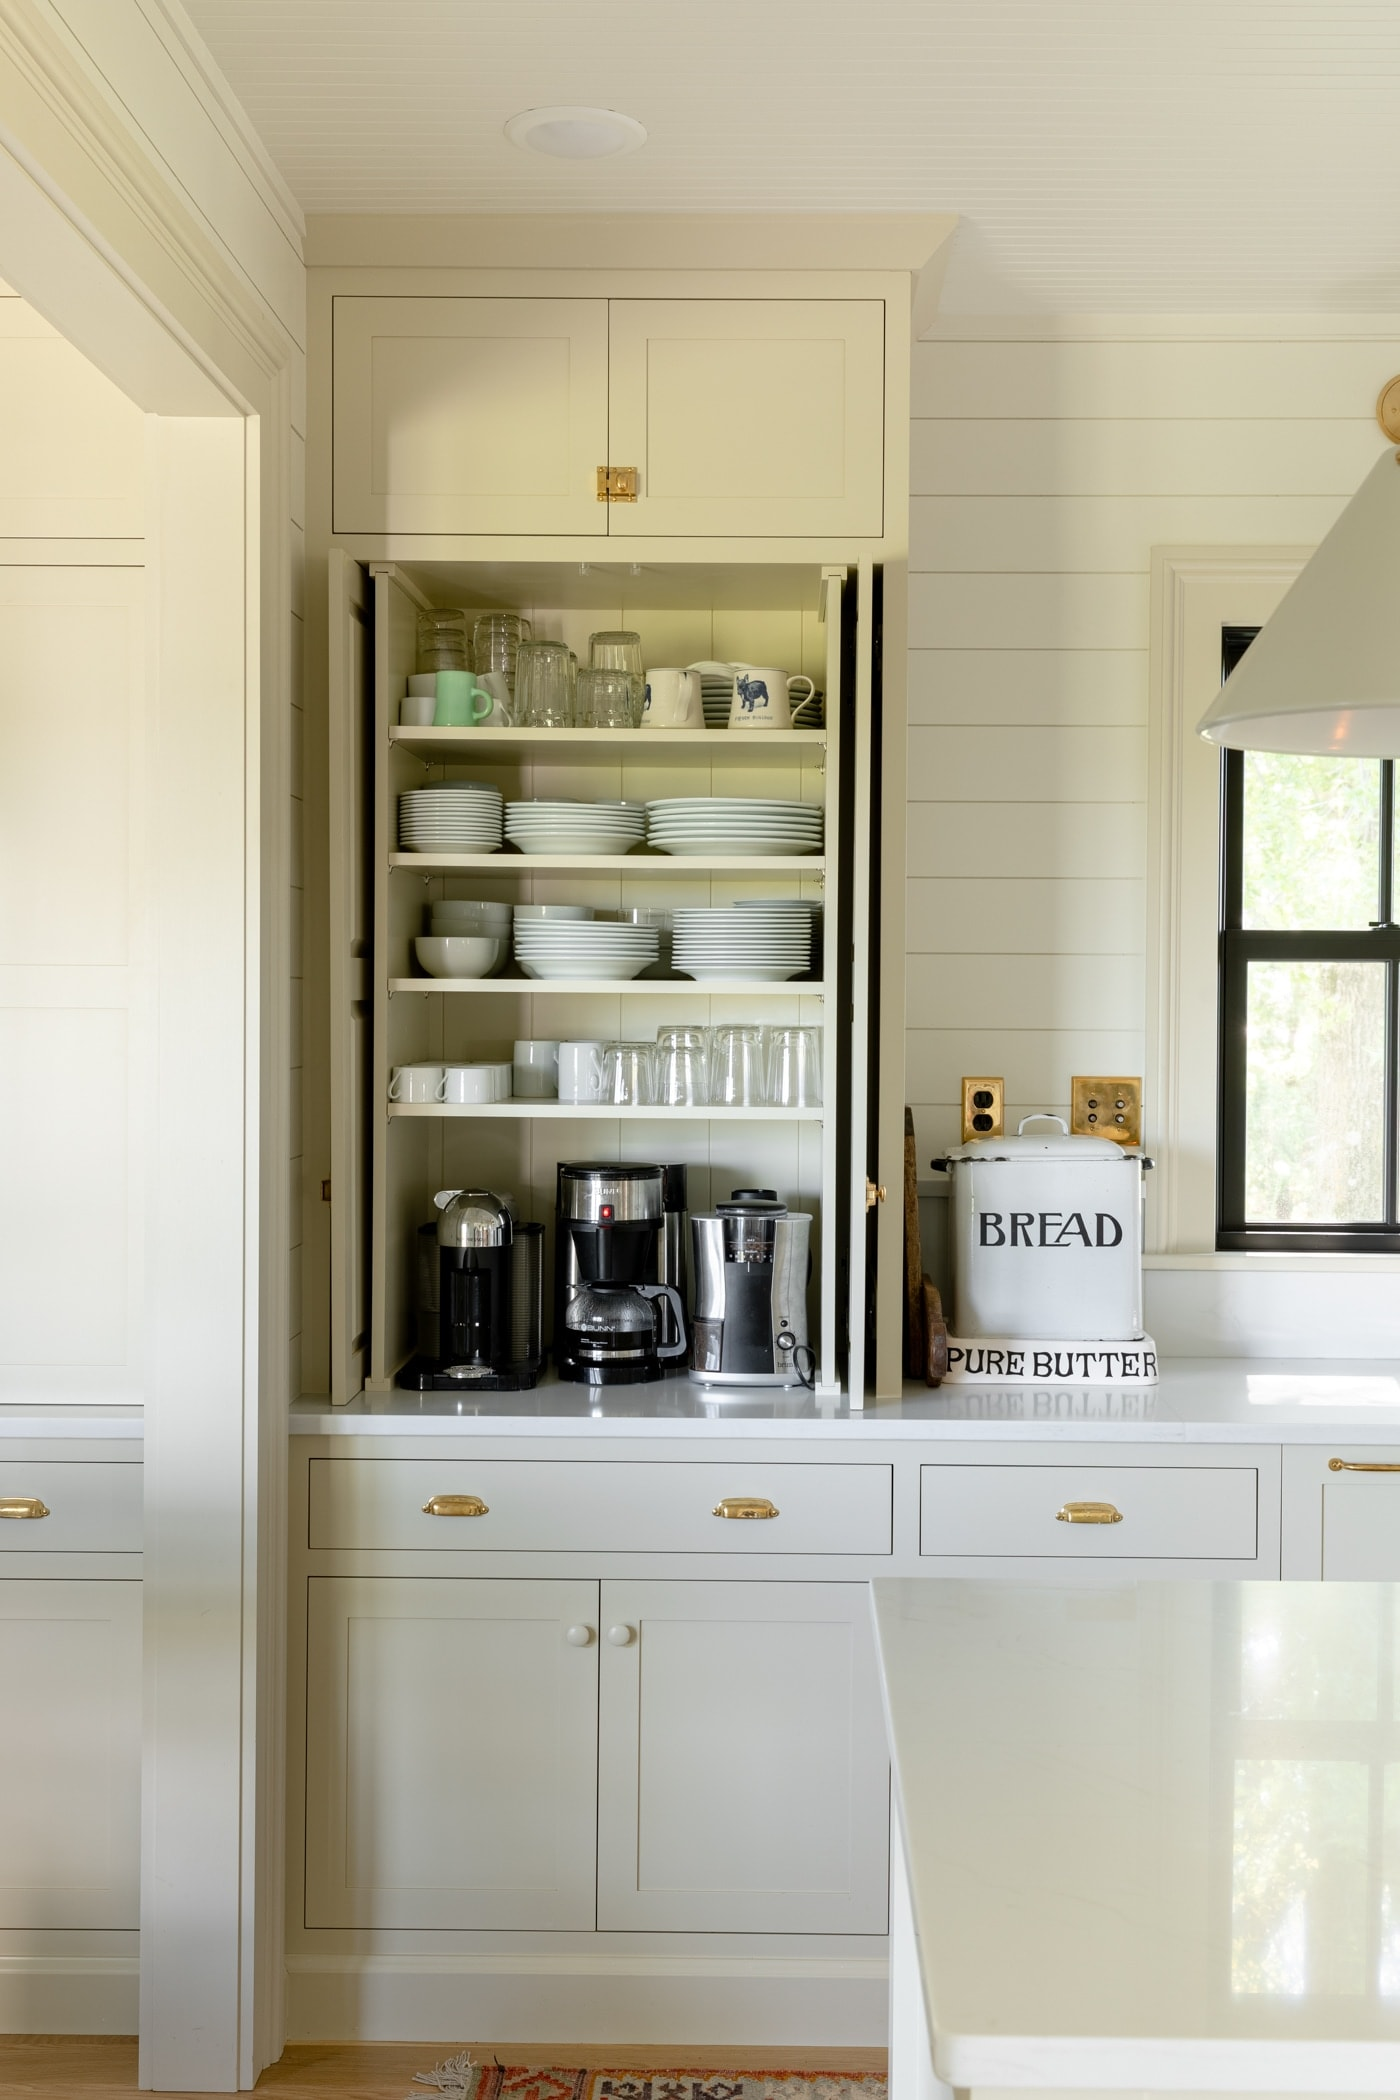 Large upper cabinet sitting on countertop with doors open revealing plates, mugs, bowls, and coffee maker